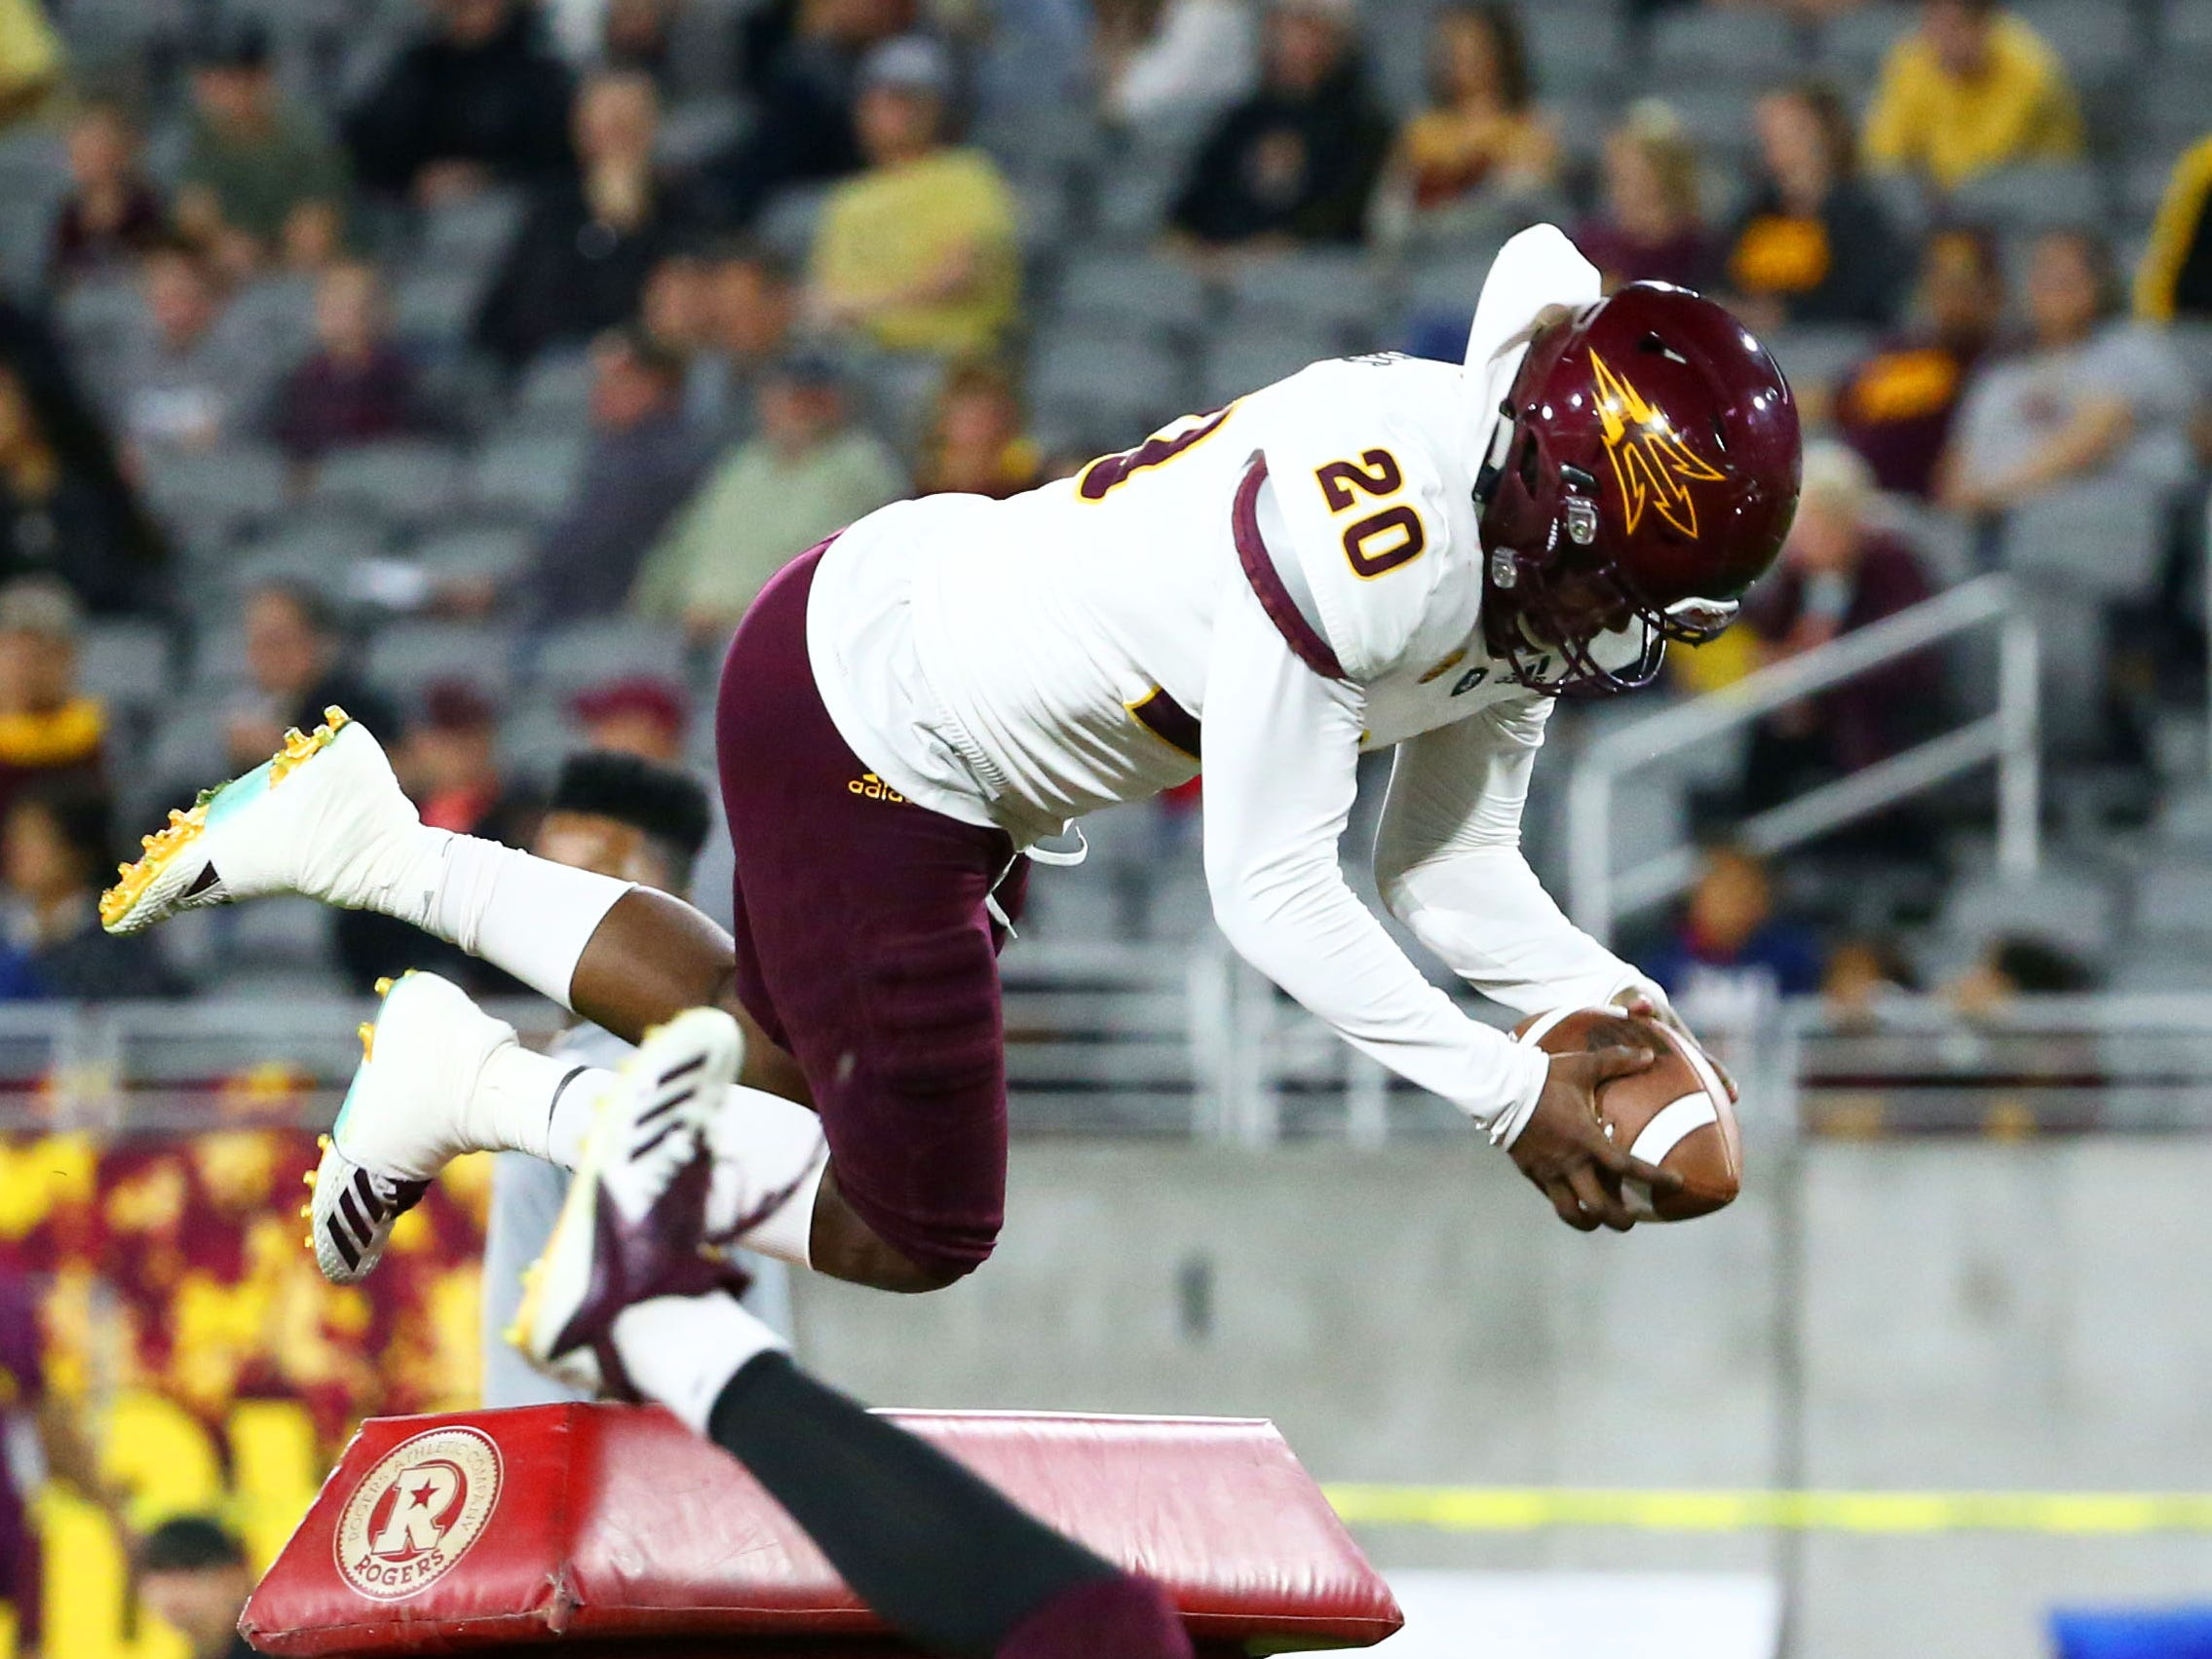 Arizona State linebacker Khaylan Thomas (20) during jumping drills at the spring practice game on Feb. 28, 2019 at Sun Devil Stadium in Tempe, Ariz.